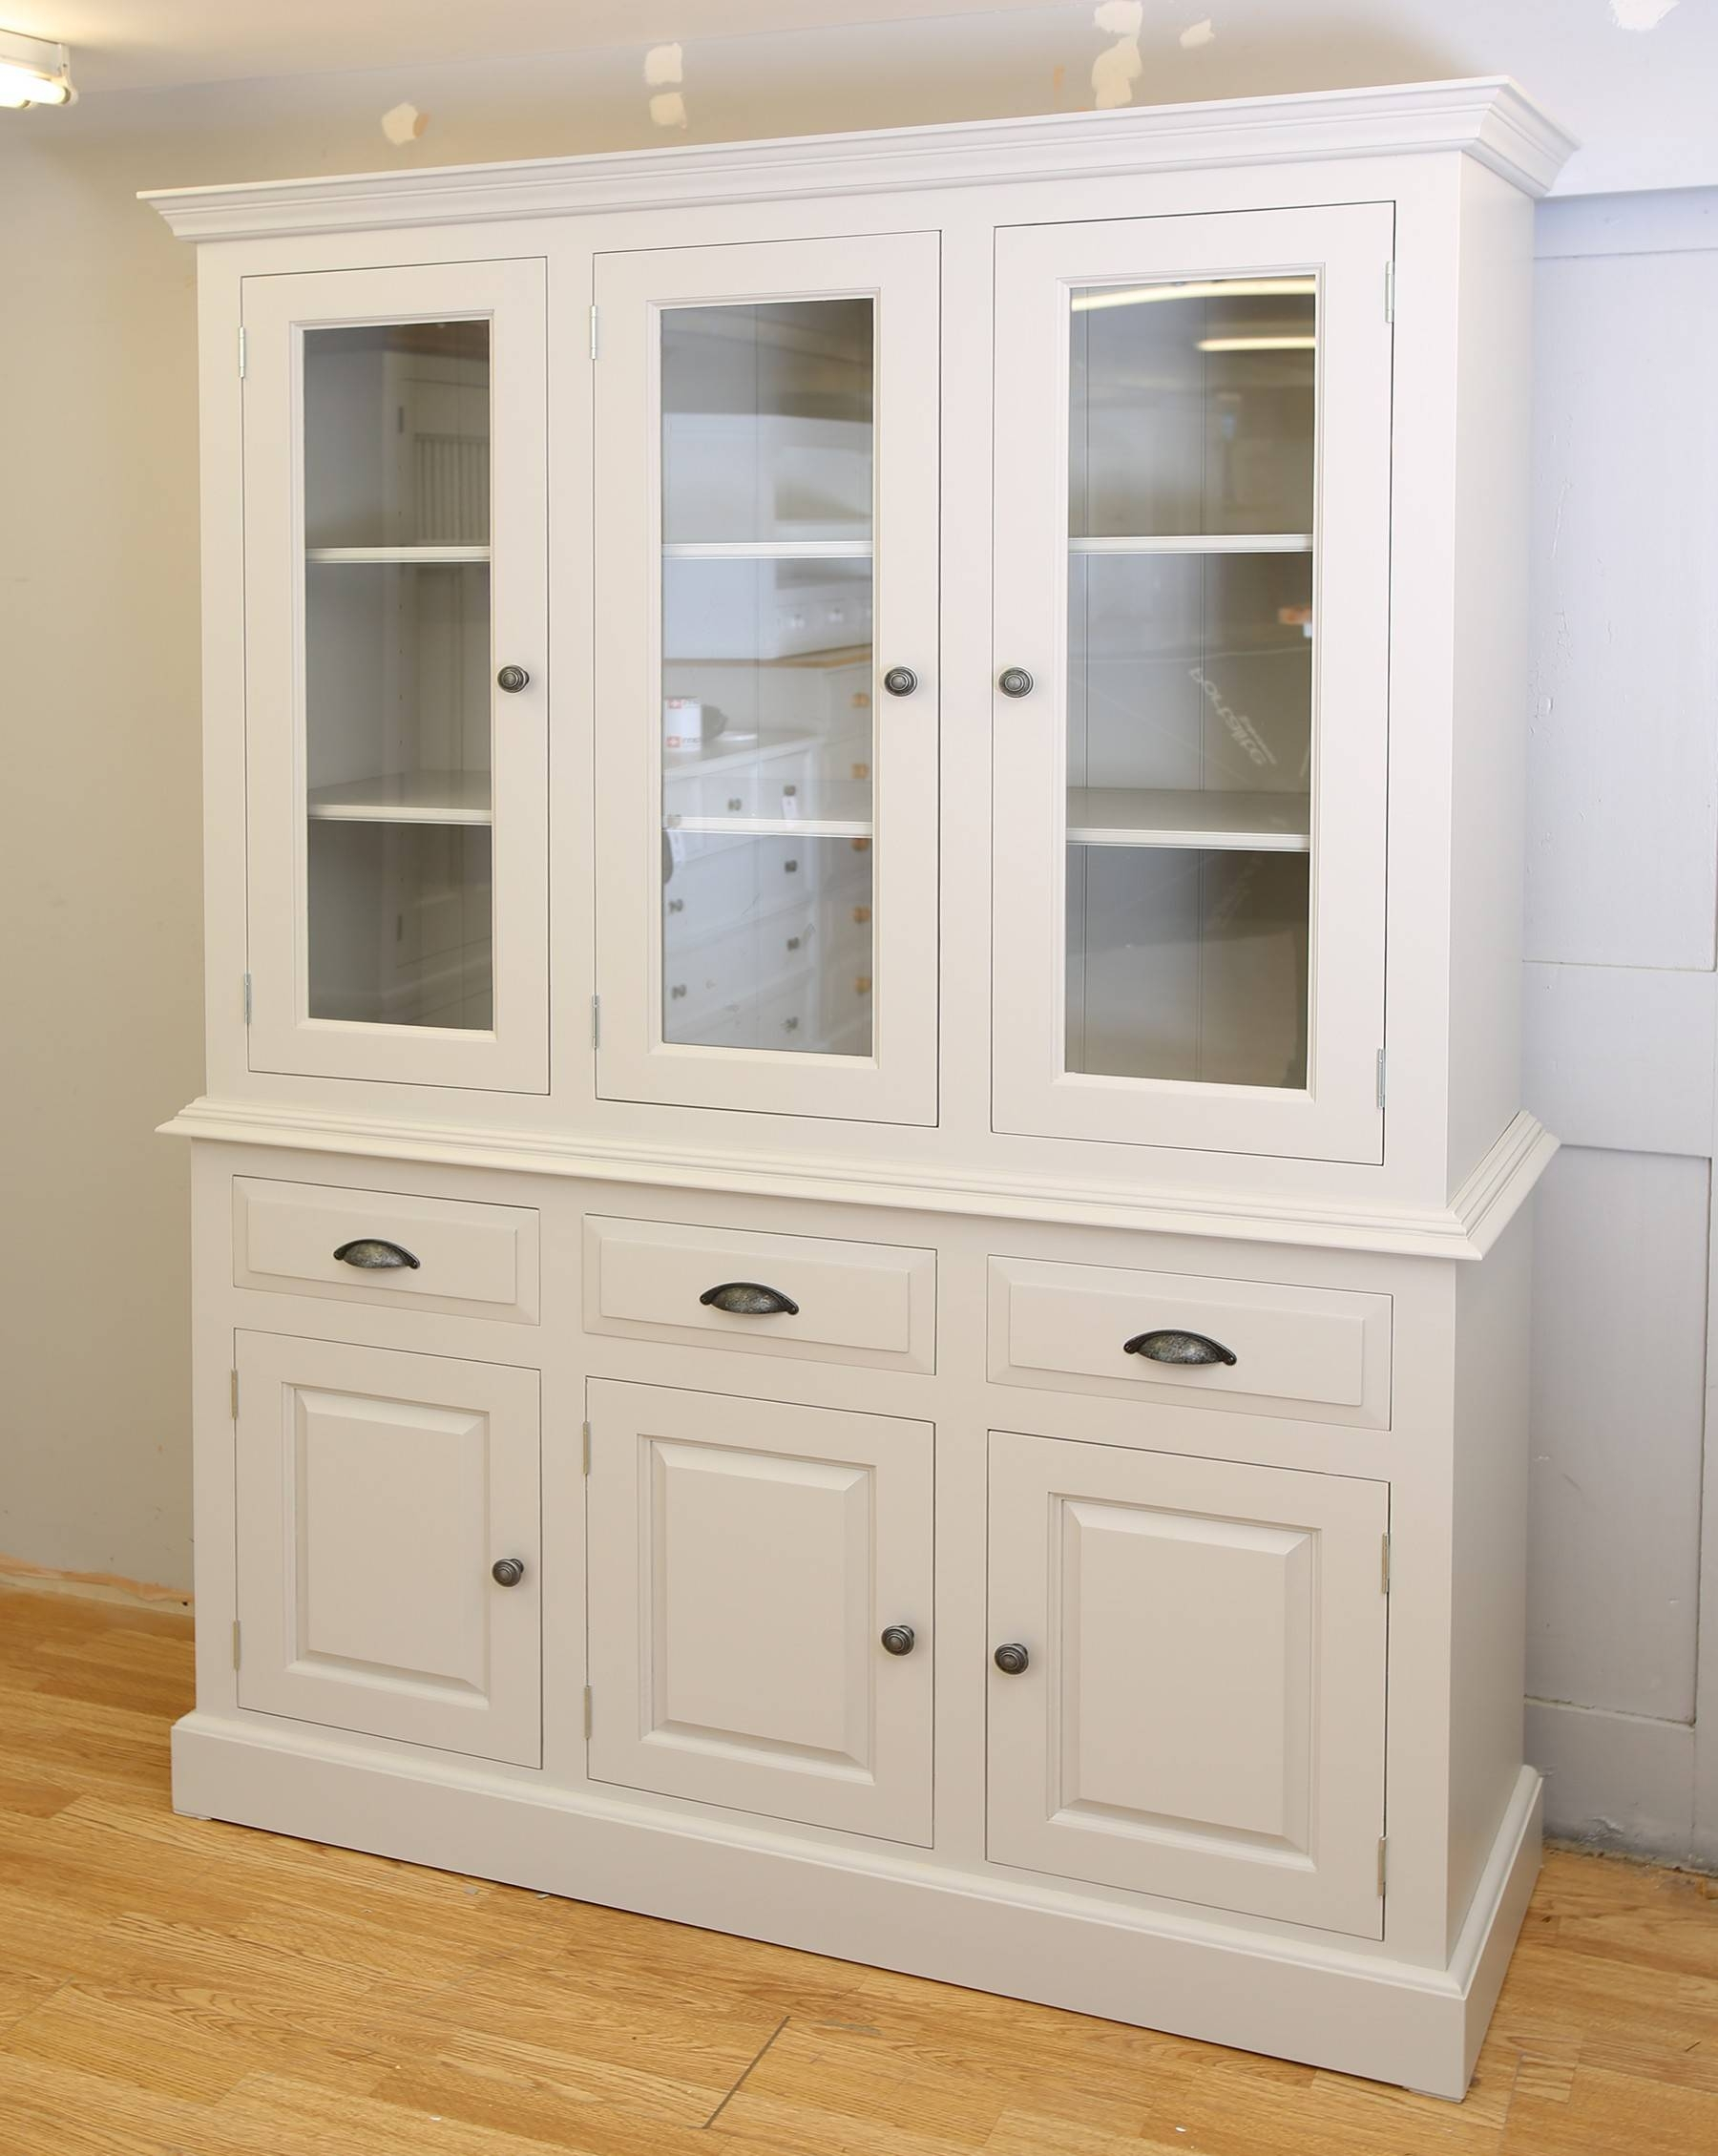 Farrow And Ball Painted 3 Door Glazed Dresser In 3 Sizes intended for Farrow and Ball Painted Wardrobes (Image 10 of 15)